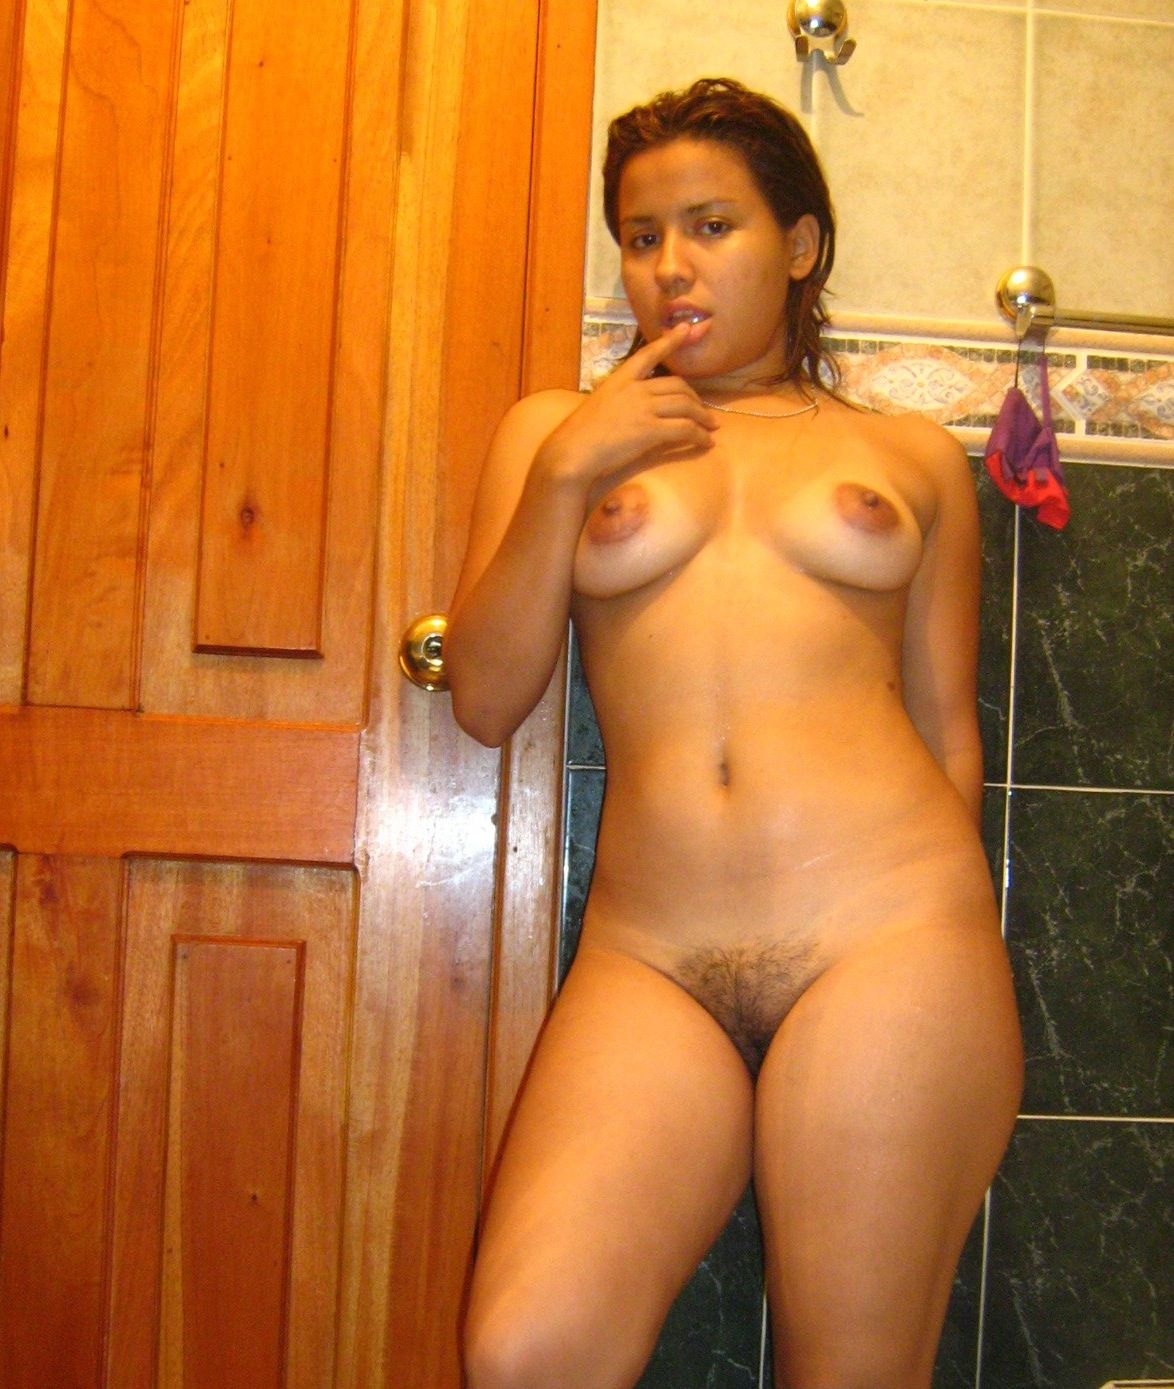 Nude mexican girl in shower